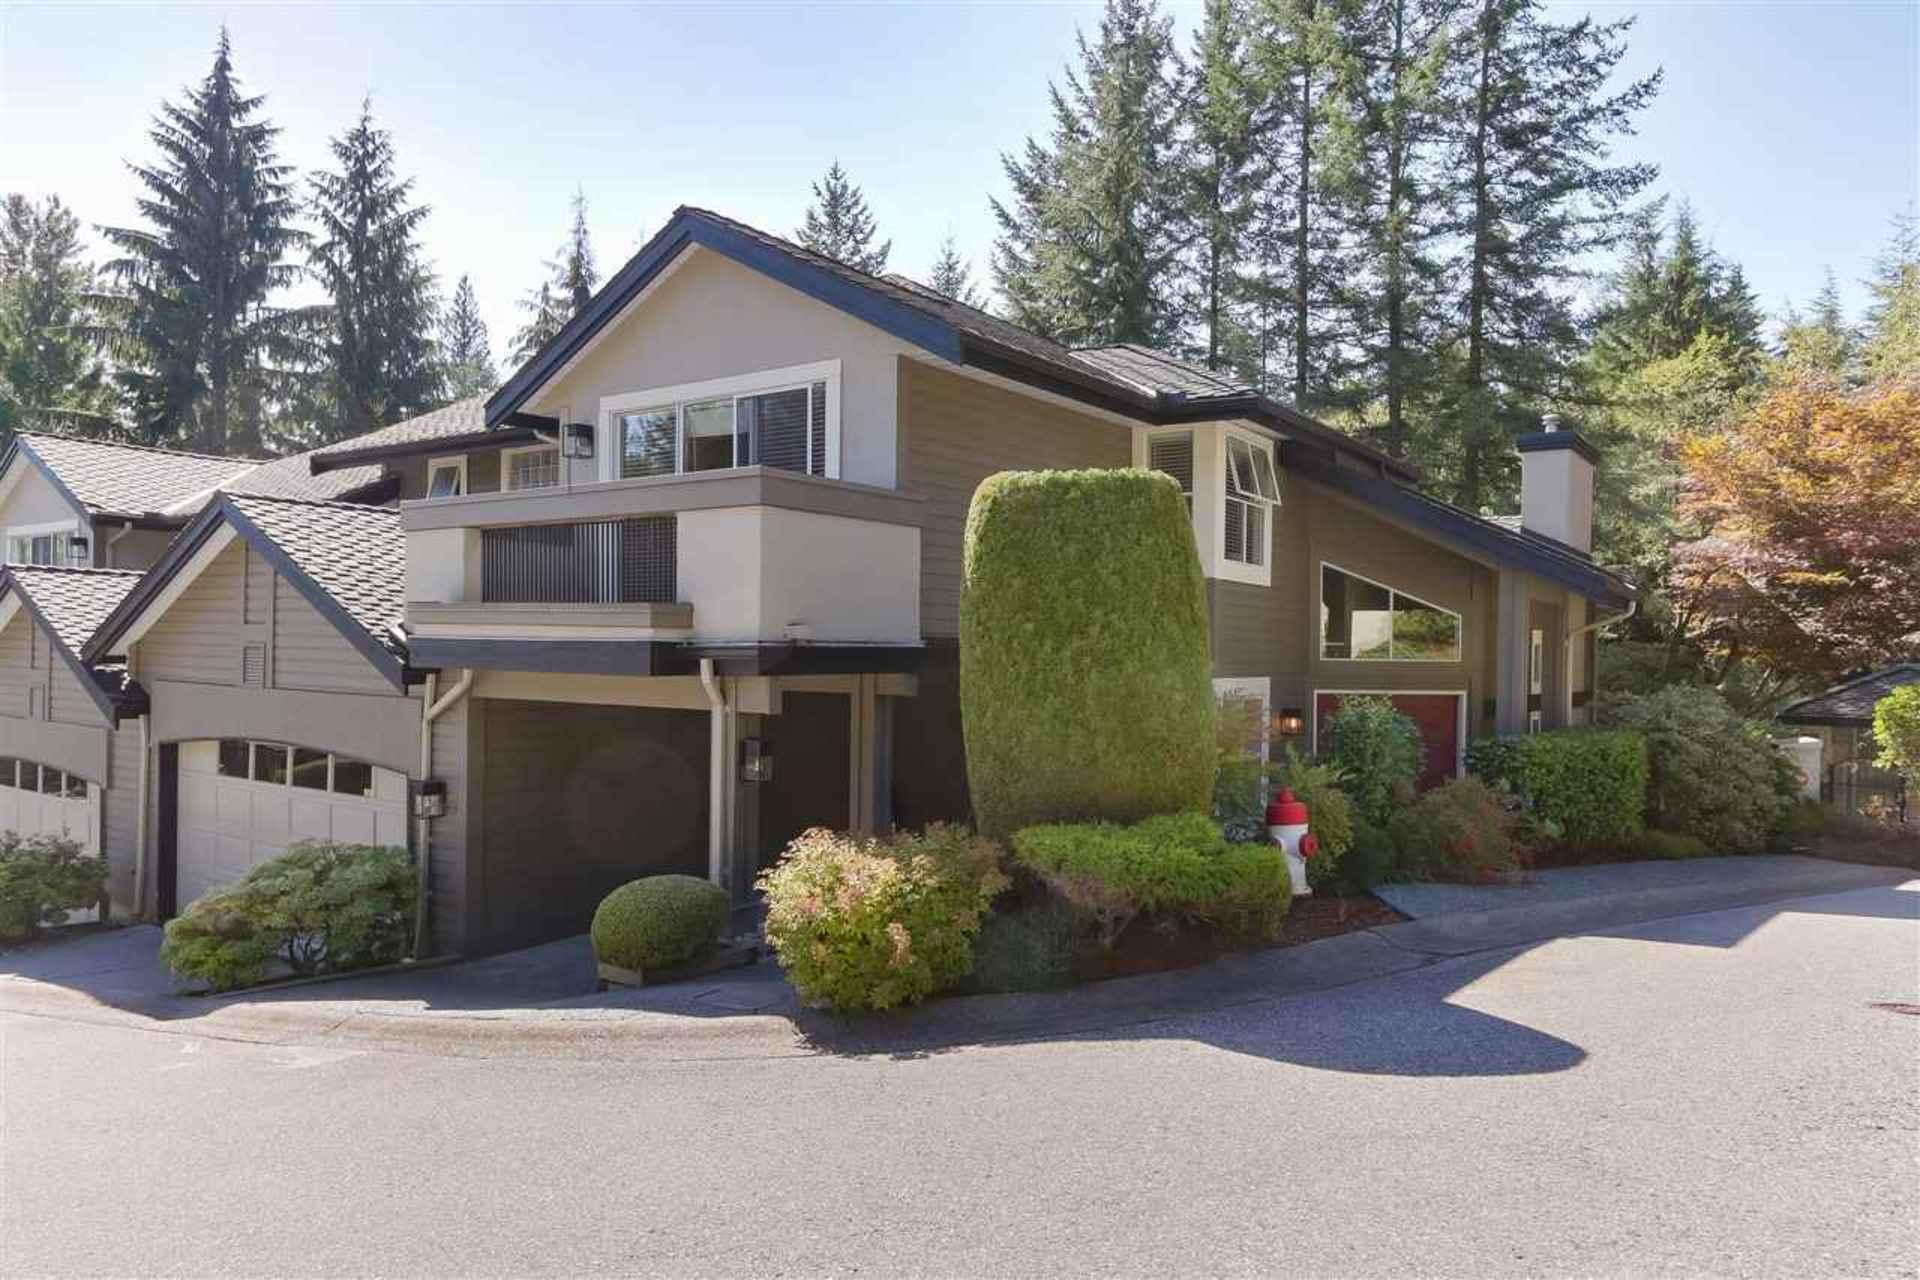 23 - 1900 Indian River Crescent, Indian River, North Vancouver